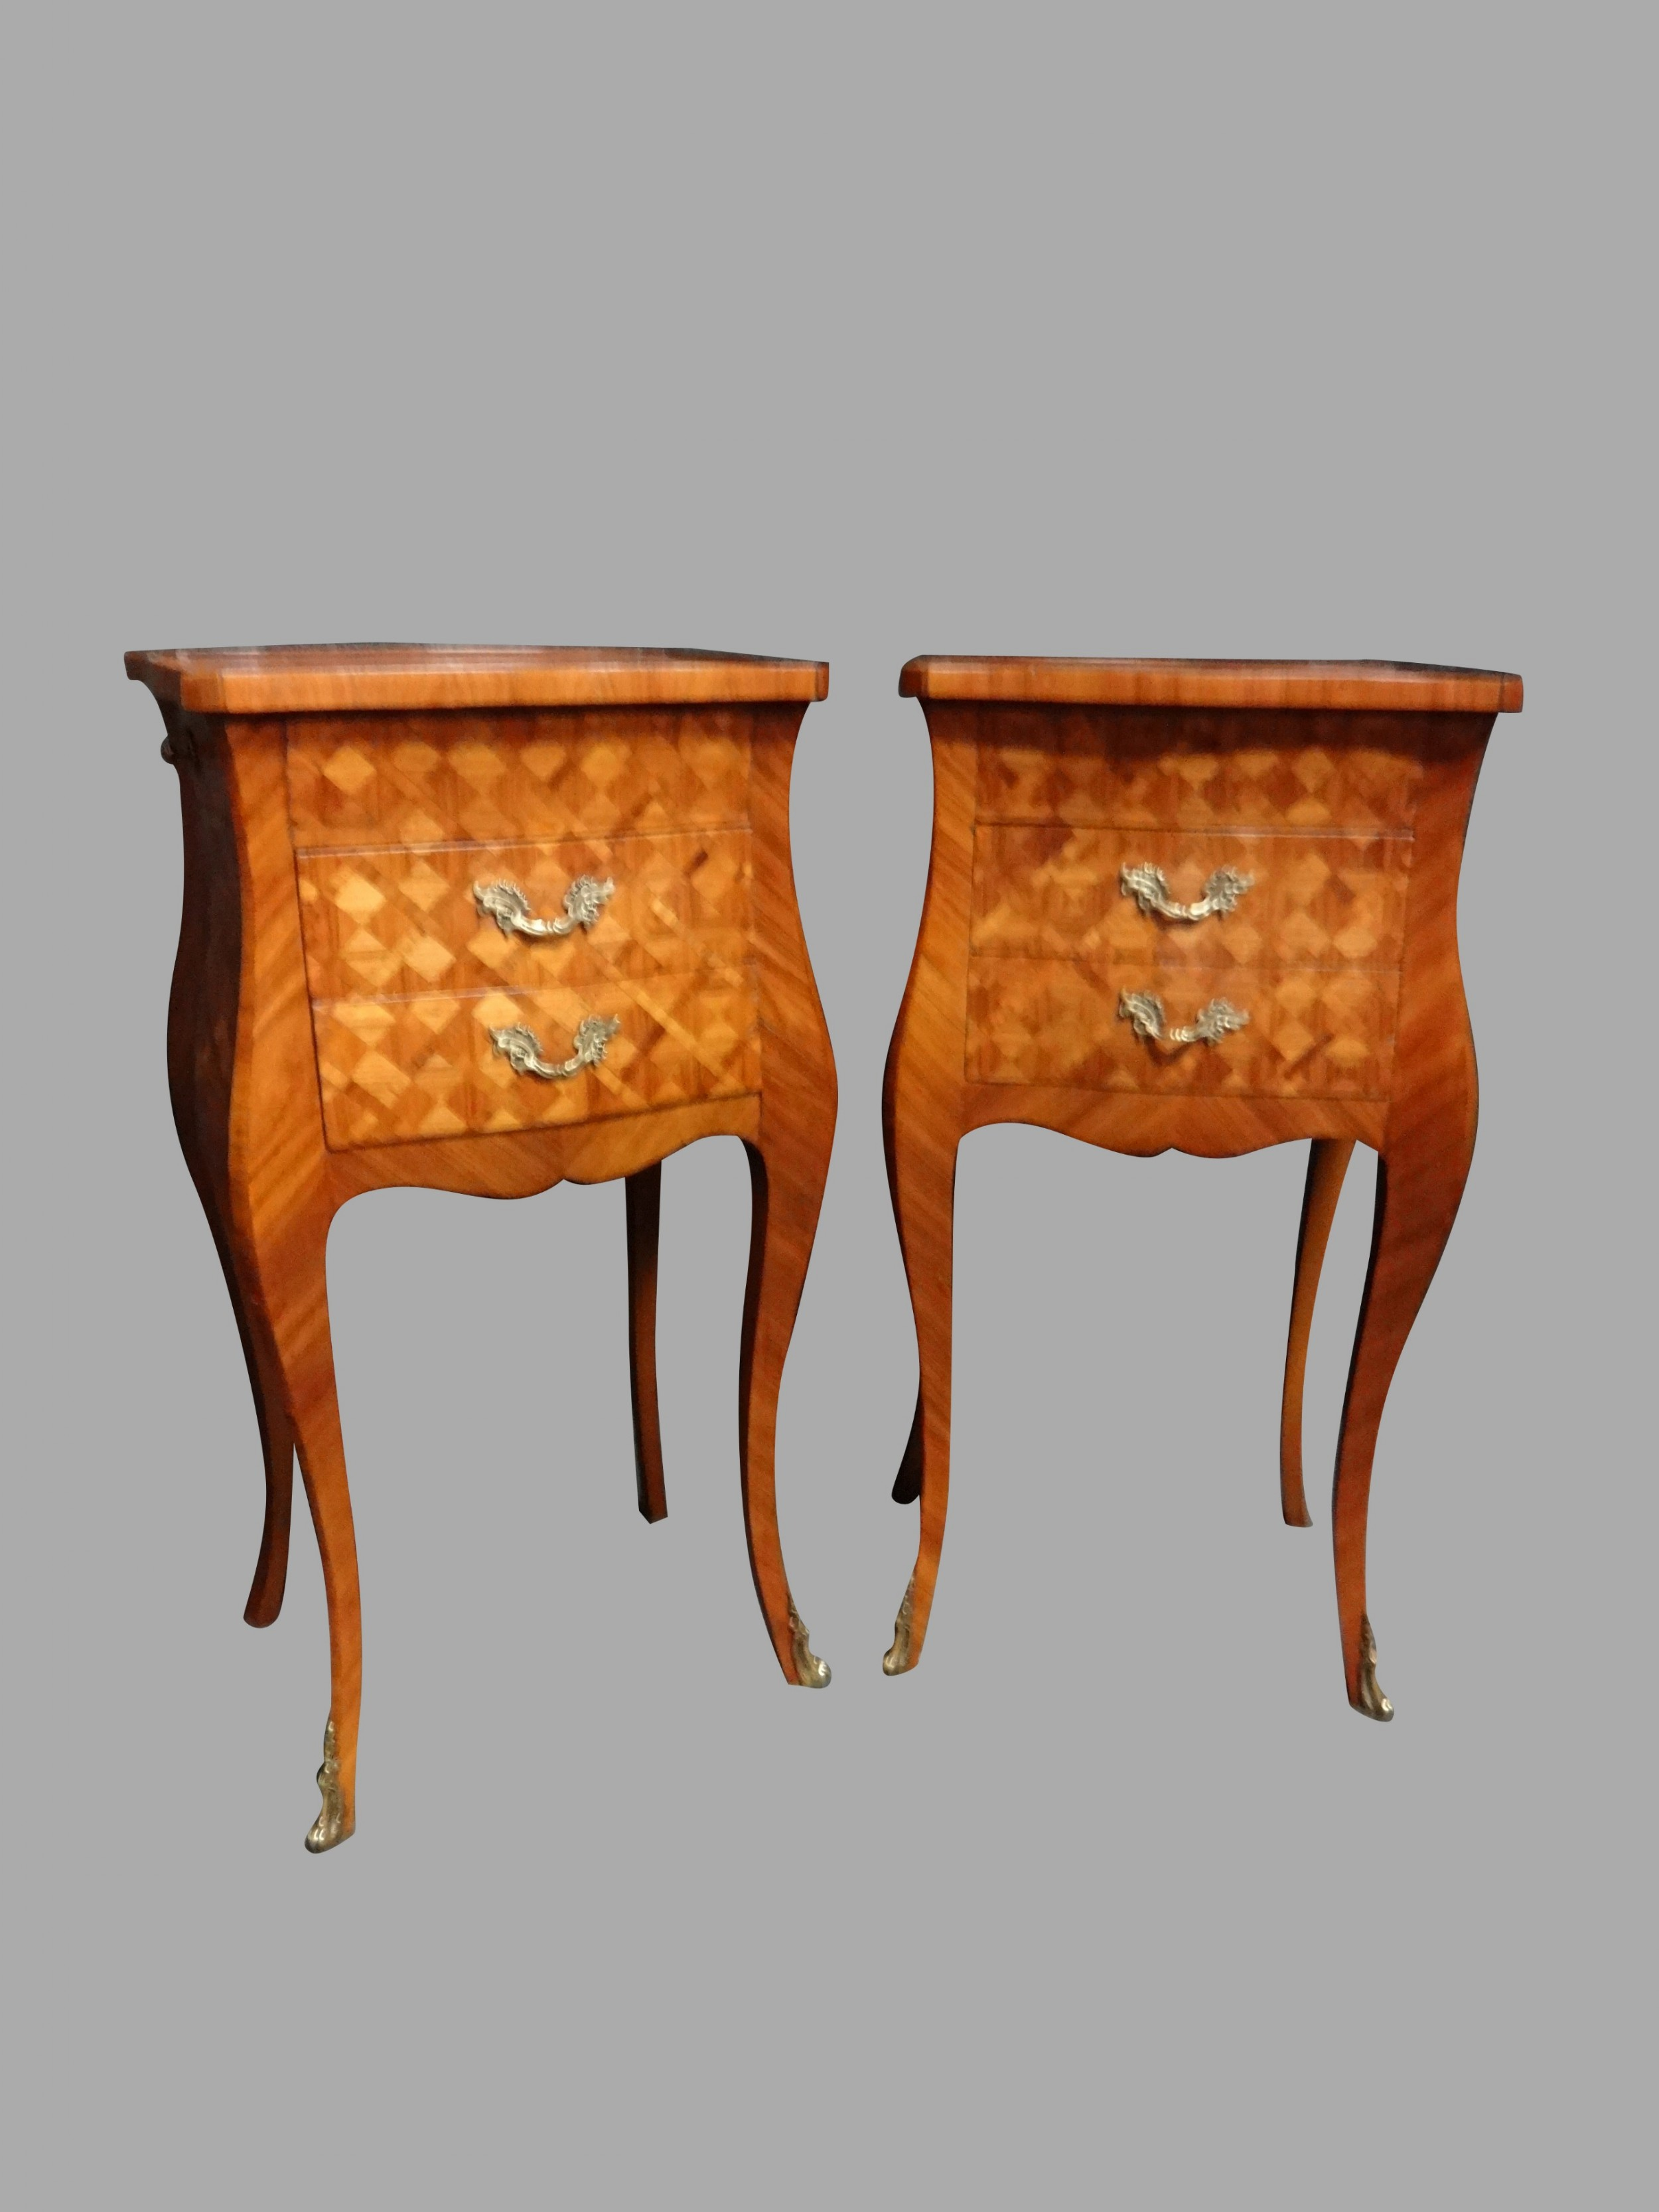 pair exquisite french parquetry bedside lamp chests of drawers